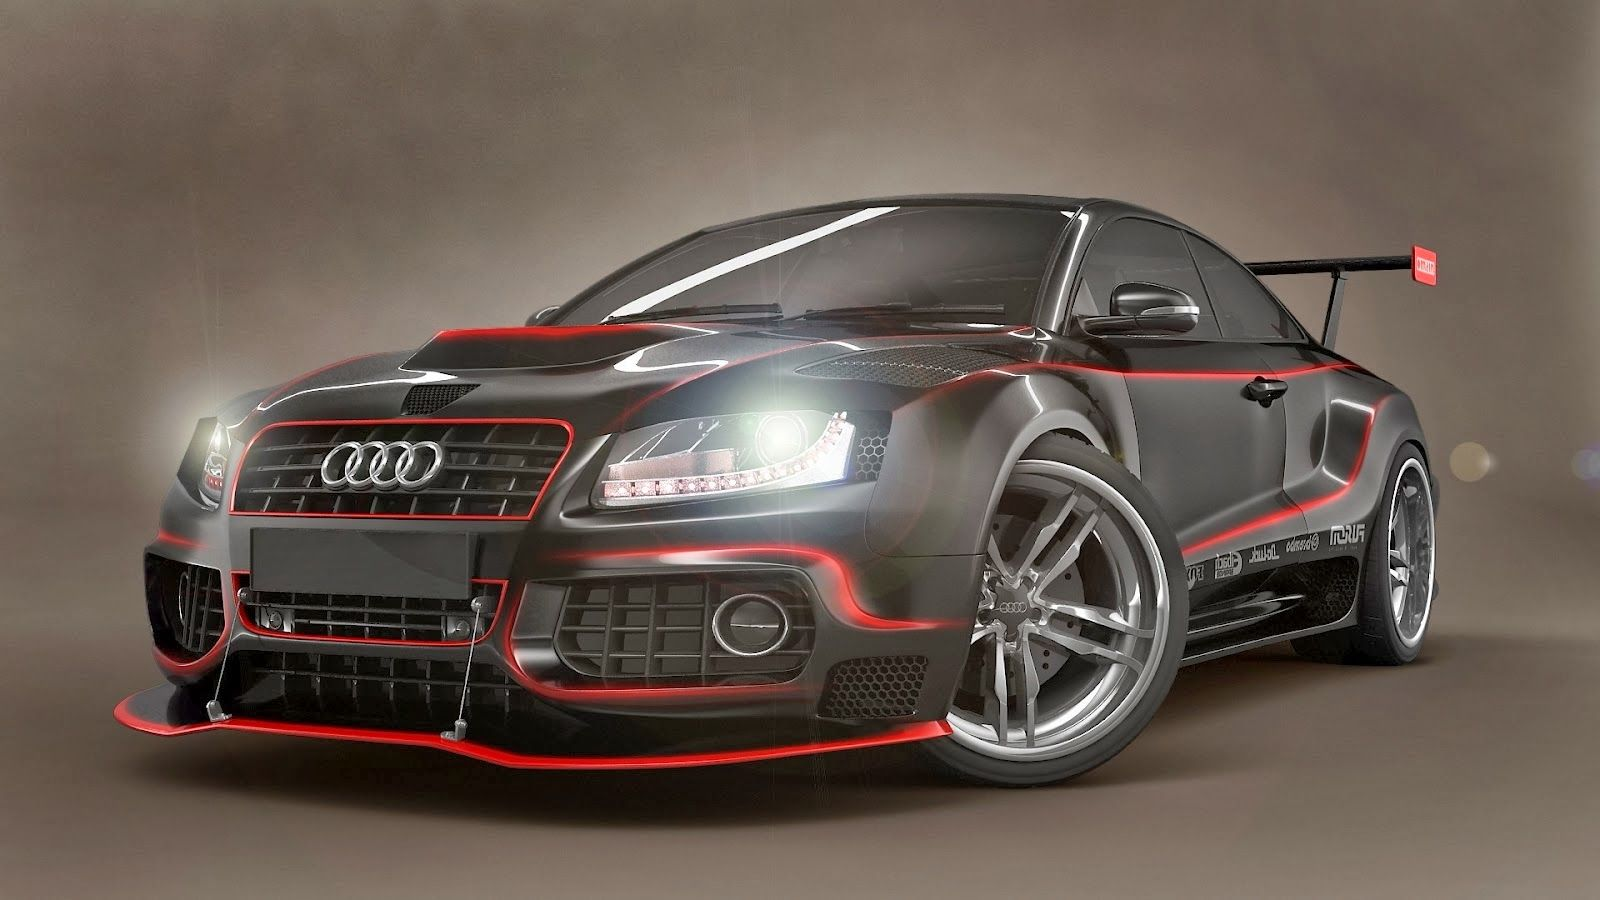 Modified Cars Hd Wallpapers Hdwallpapers360 Hd